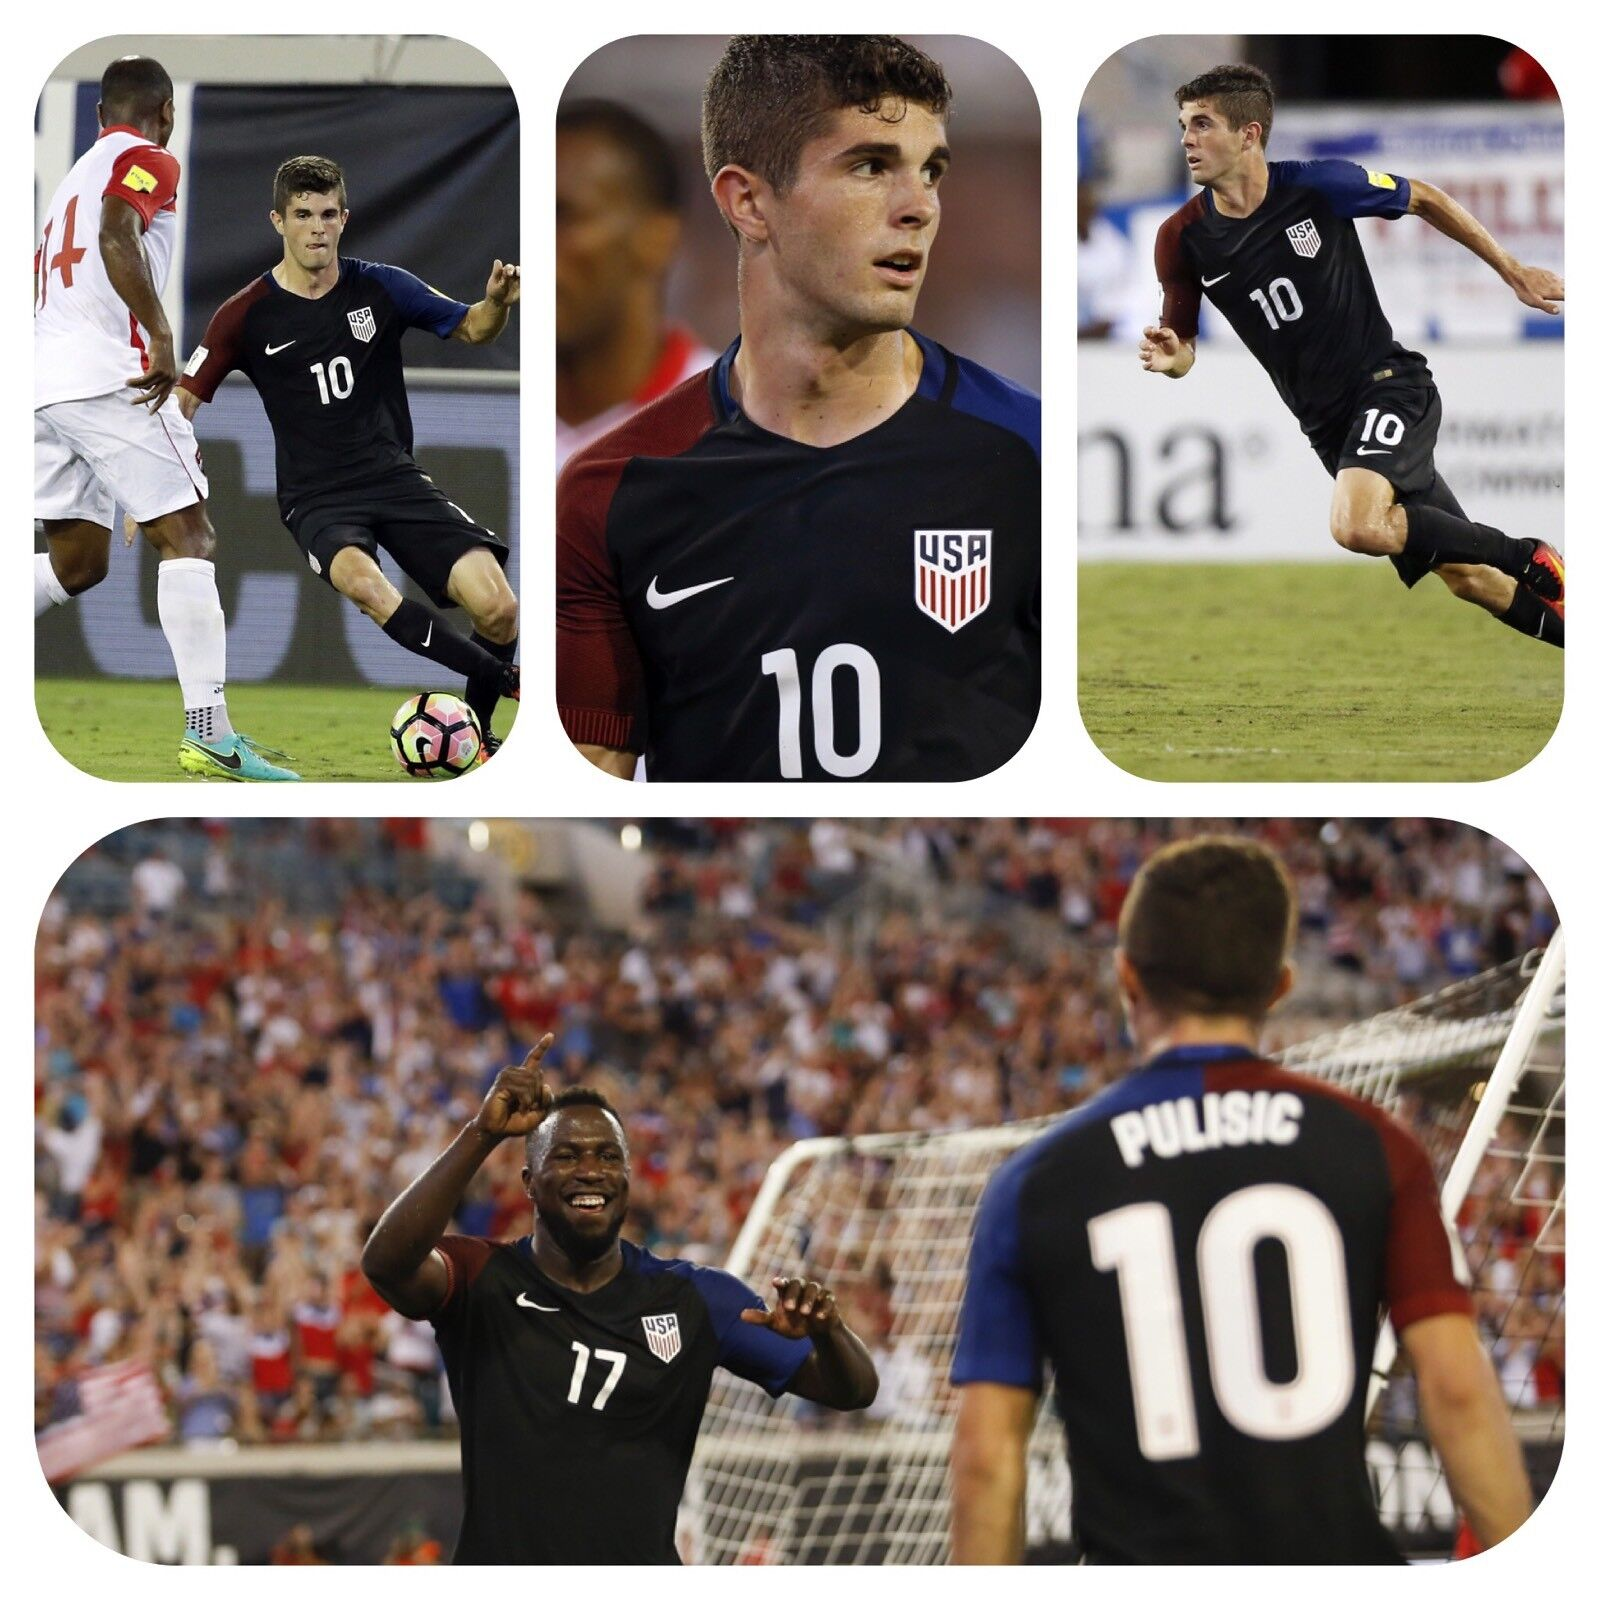 NIKE USA MENS SOCCER NATIONAL TEAM 16 17 AWAY PULISIC LS PLAYER ISSUE M